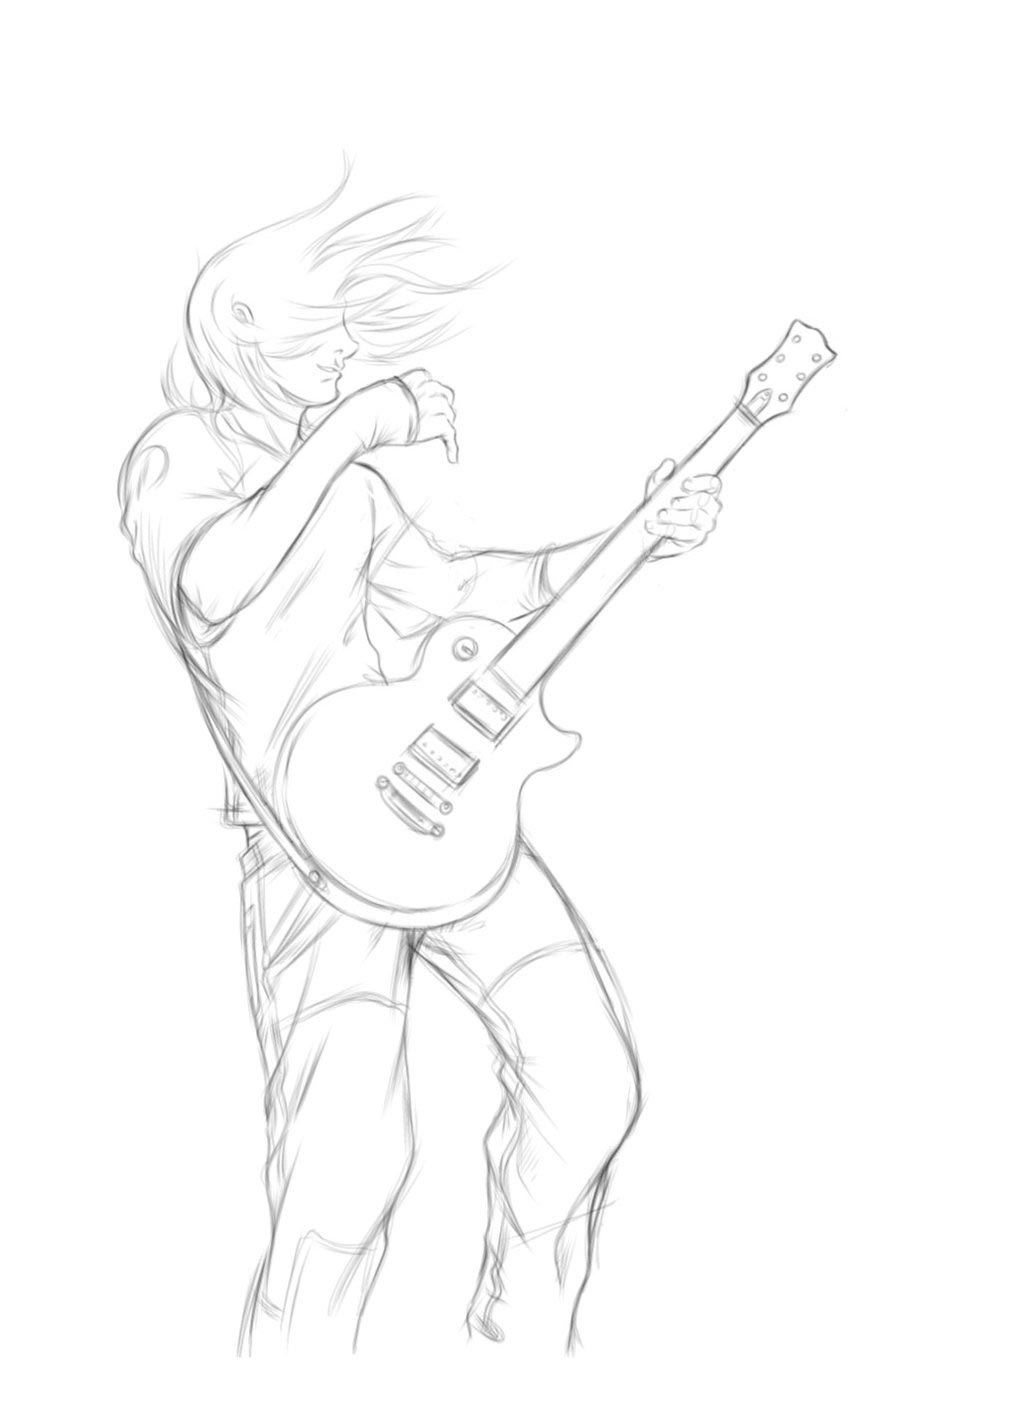 Guitarist drawing reference